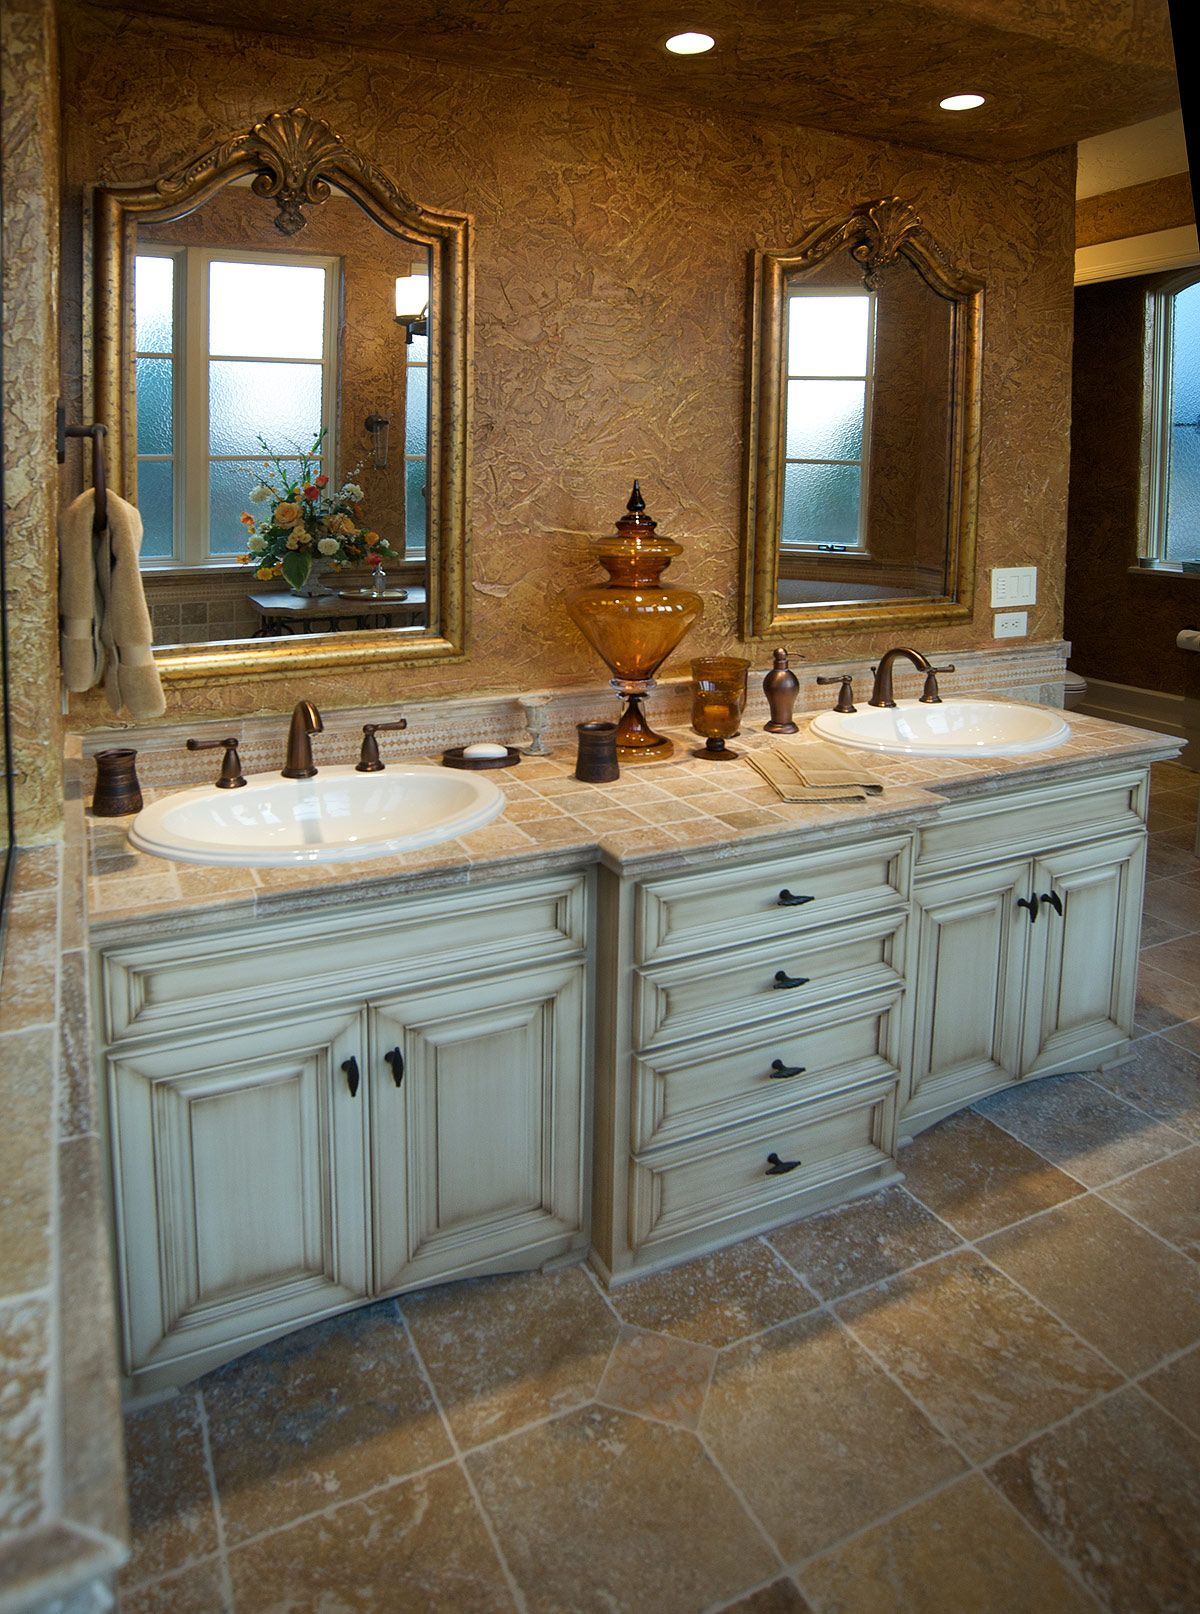 Traditional vanity bathroom kitchen design pictures pictures of